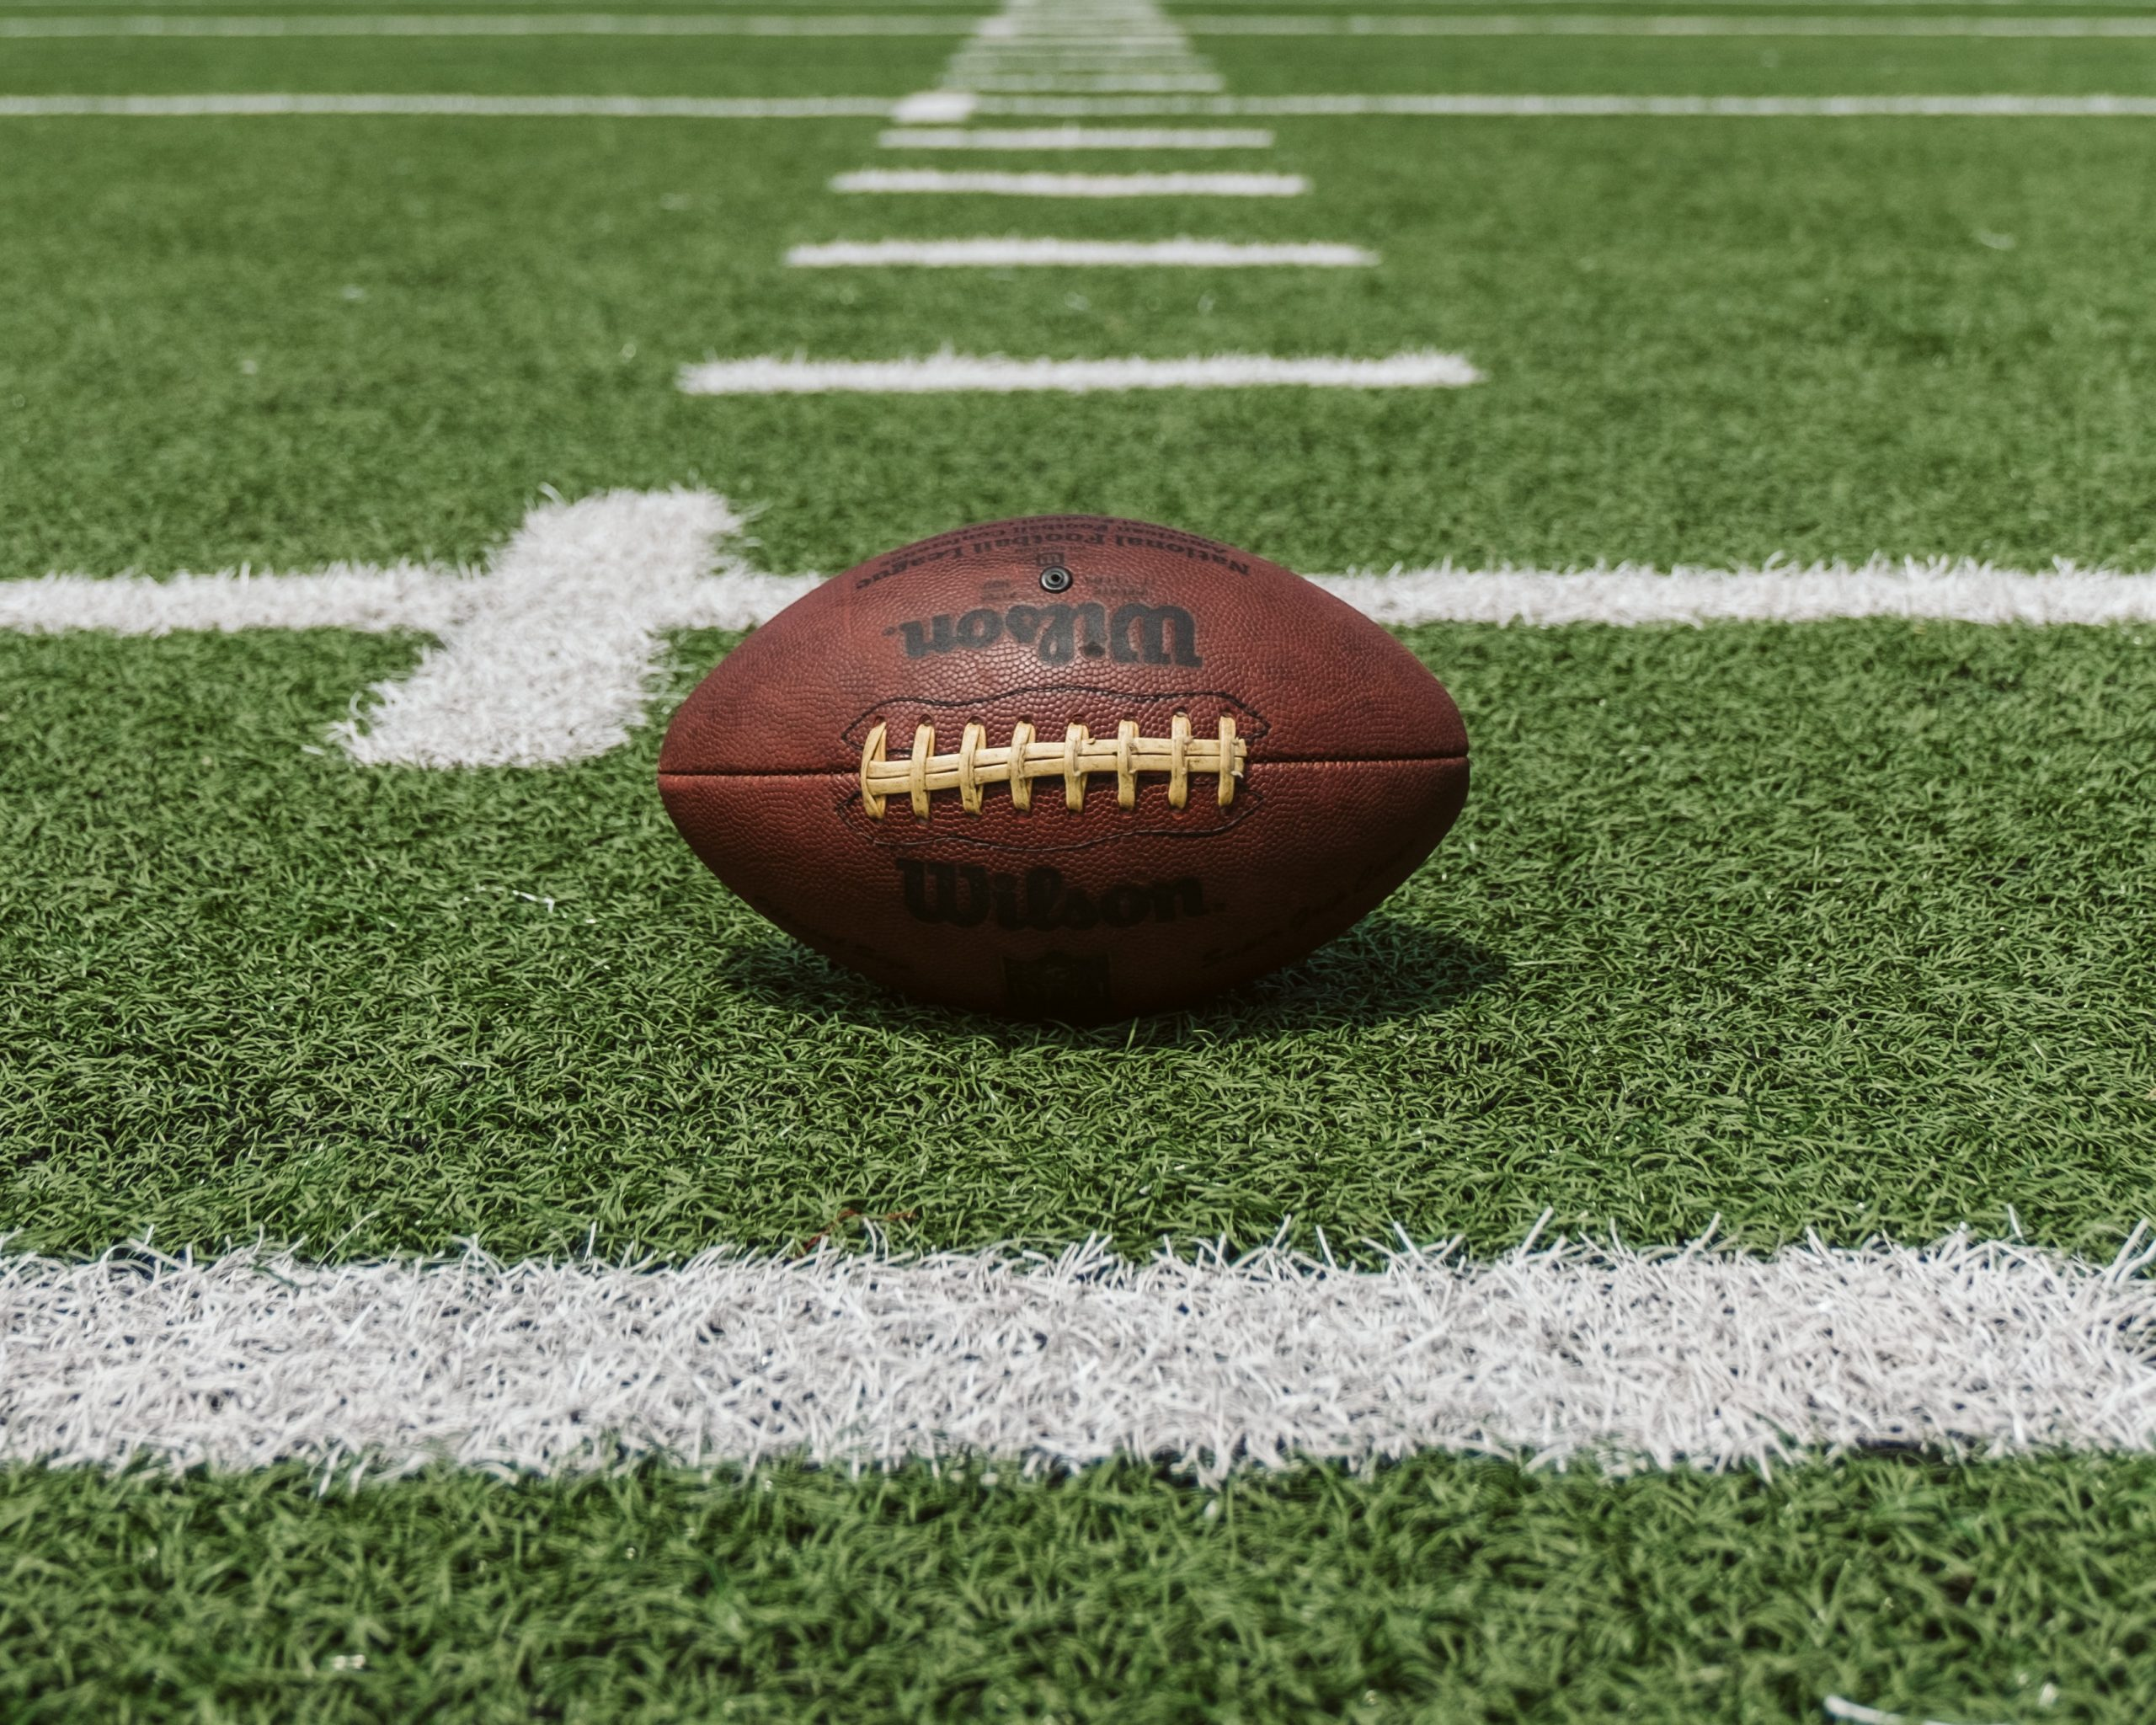 A picture of a football laying on a football field.